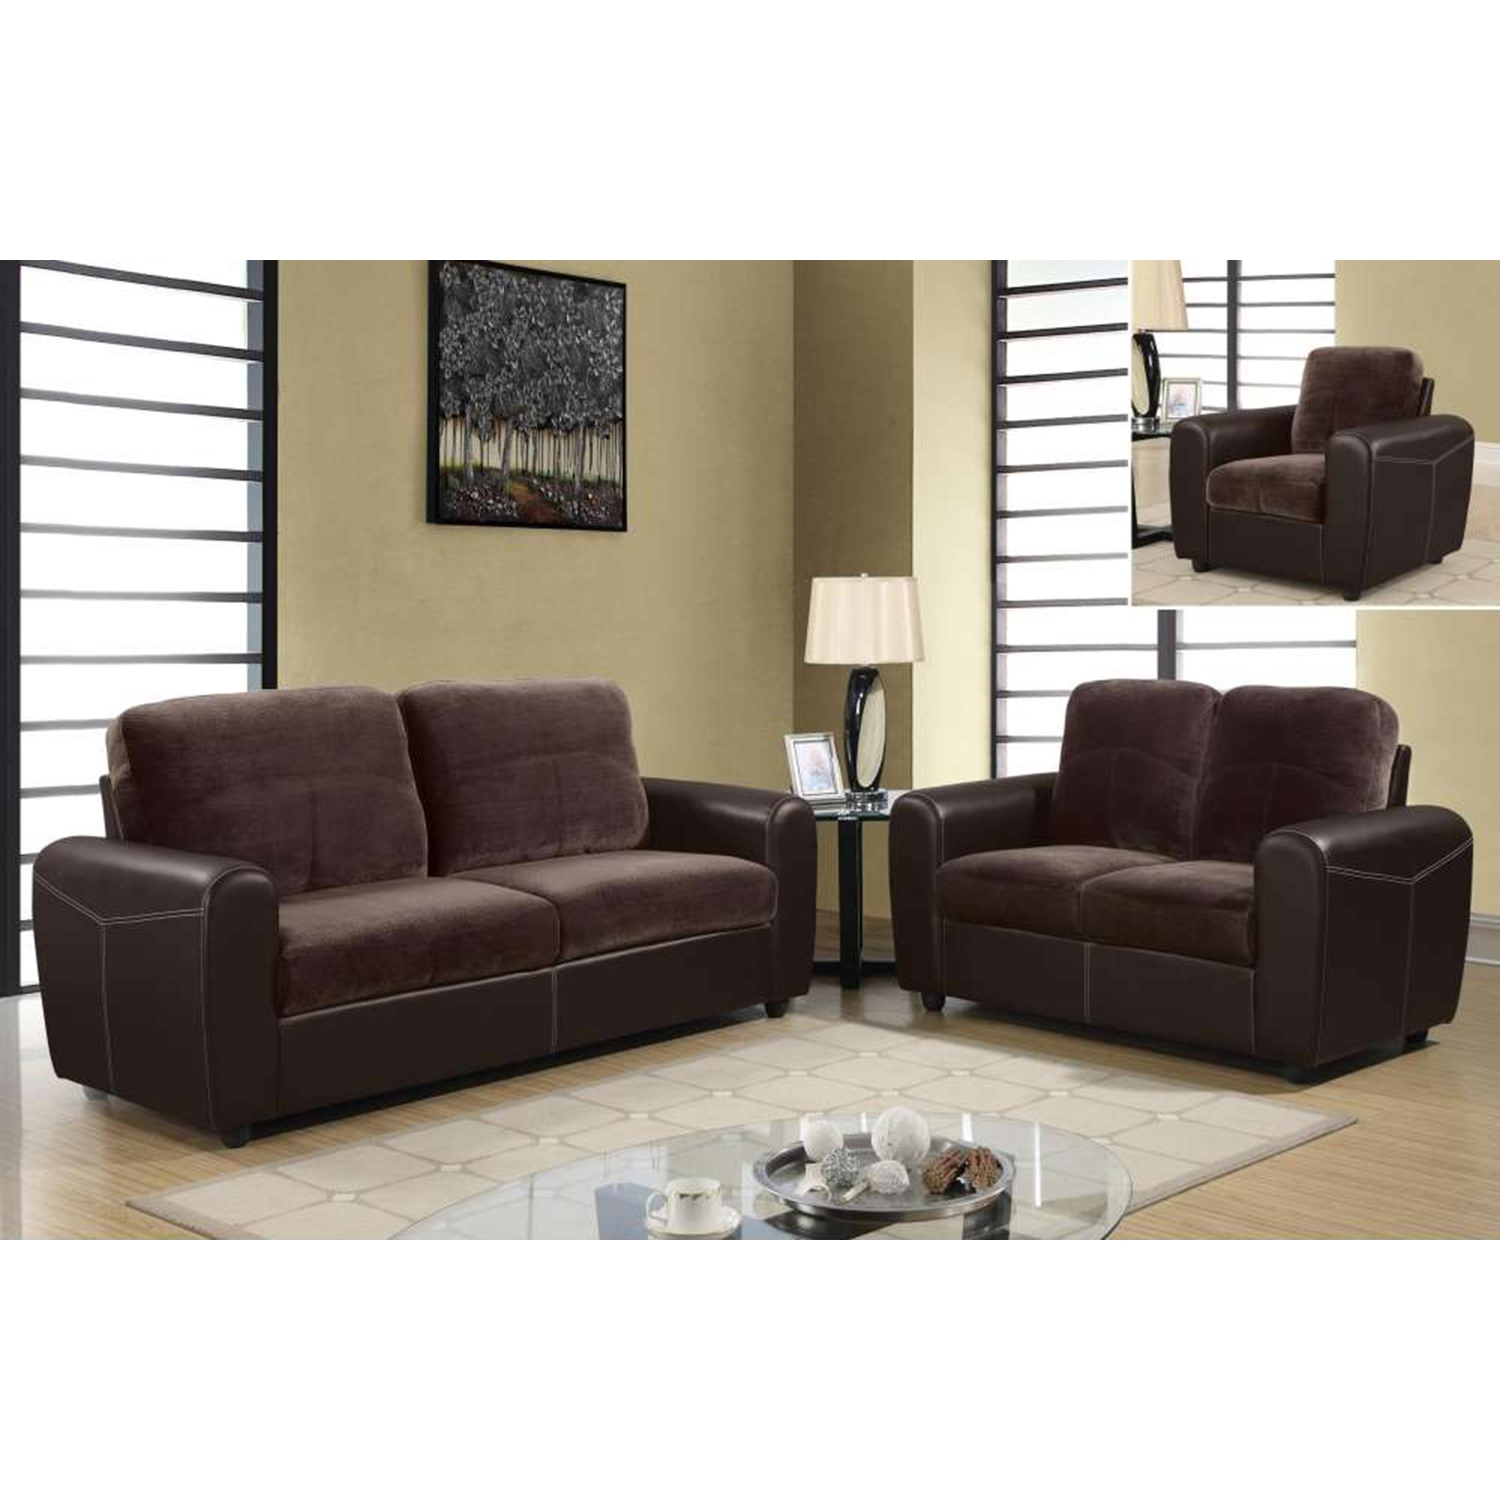 Joel Sofa Set - Chocolate/Brown Two Tone Color